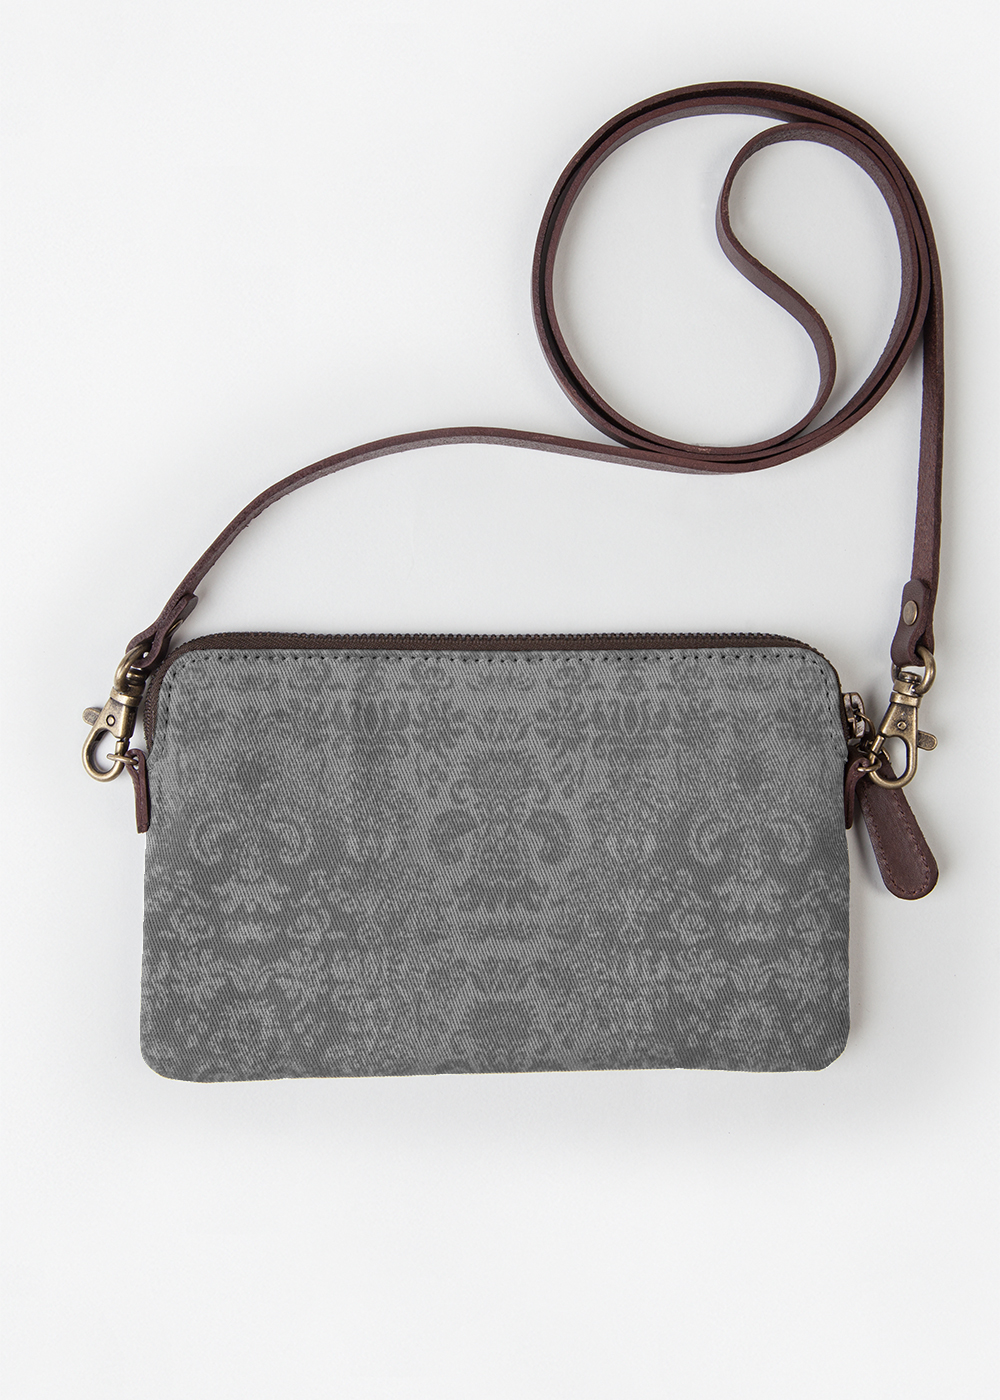 VIDA Leather Statement Clutch - Schnauser clutch by VIDA Crz5p